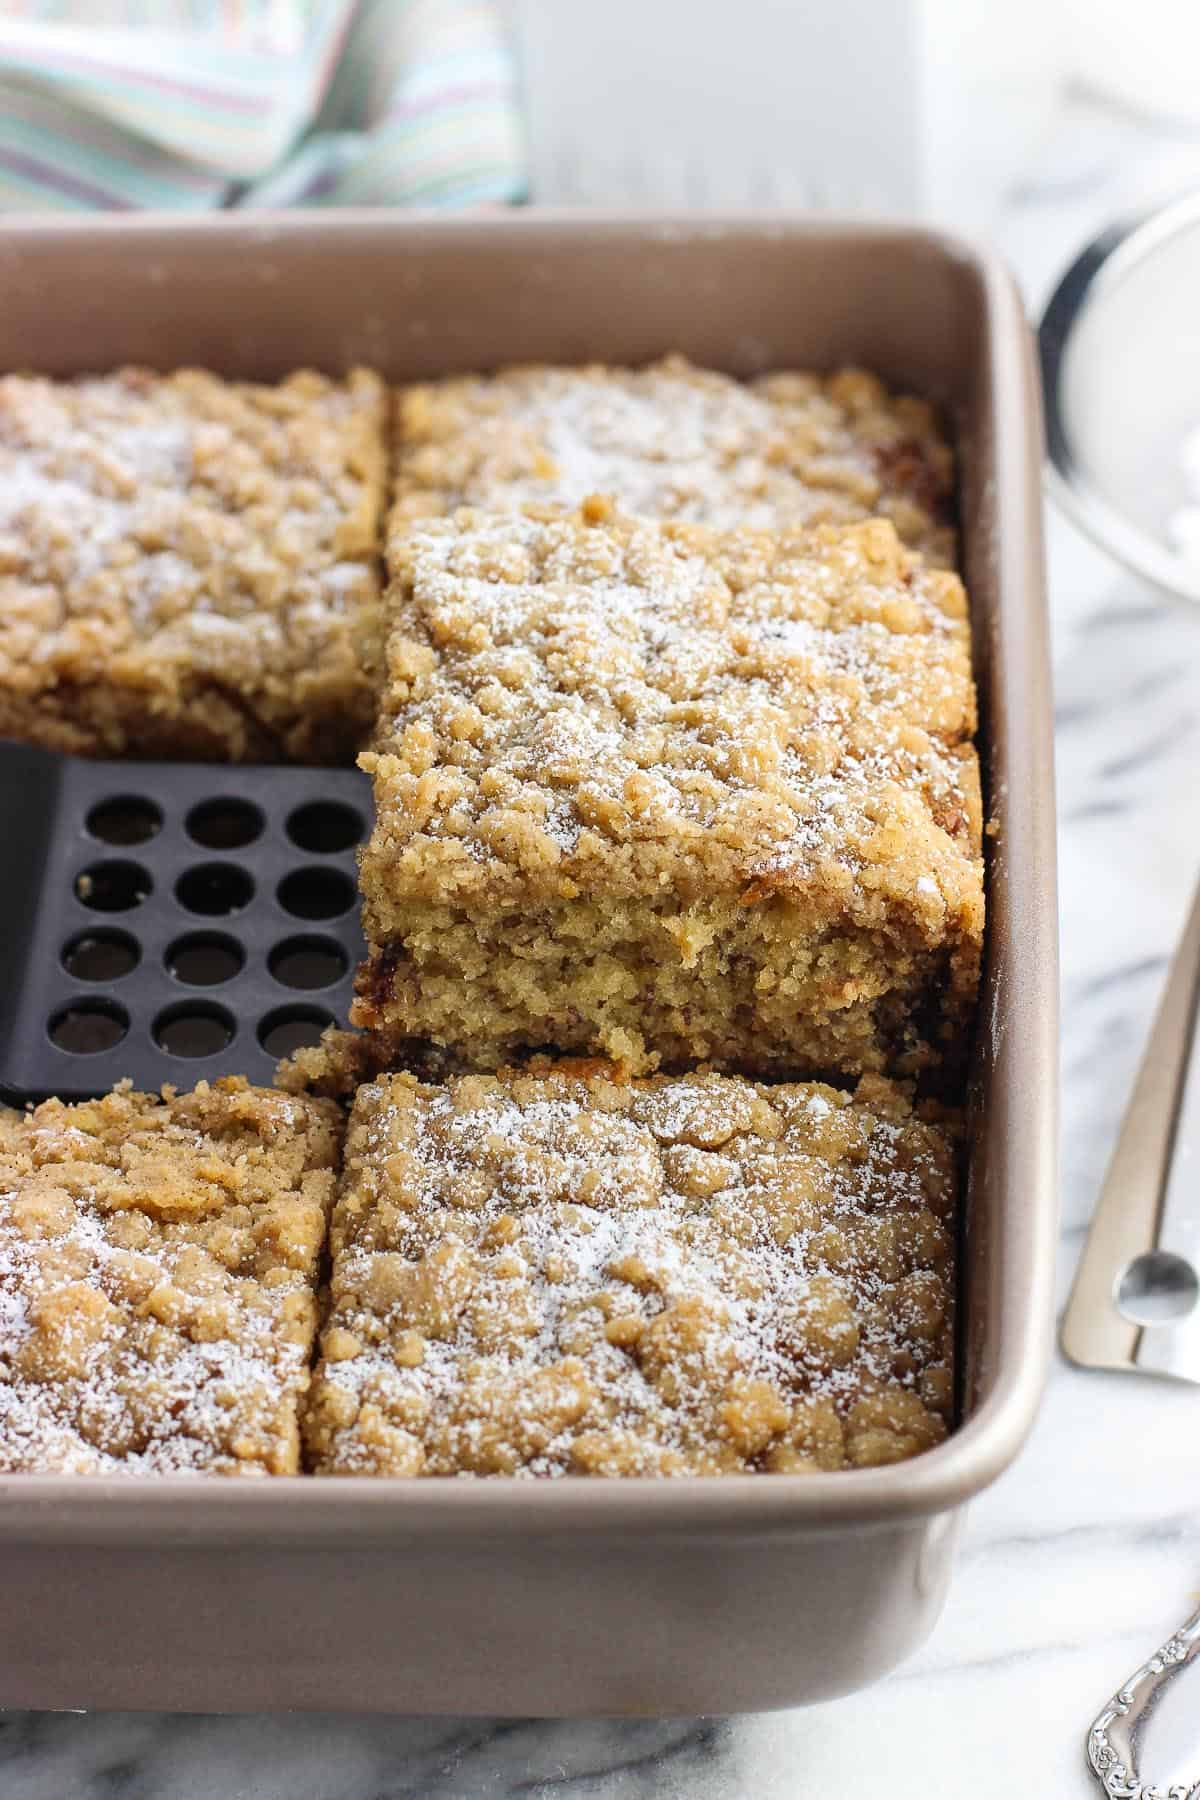 A piece of banana crumb cake being lifted out of its baking dish to serve.